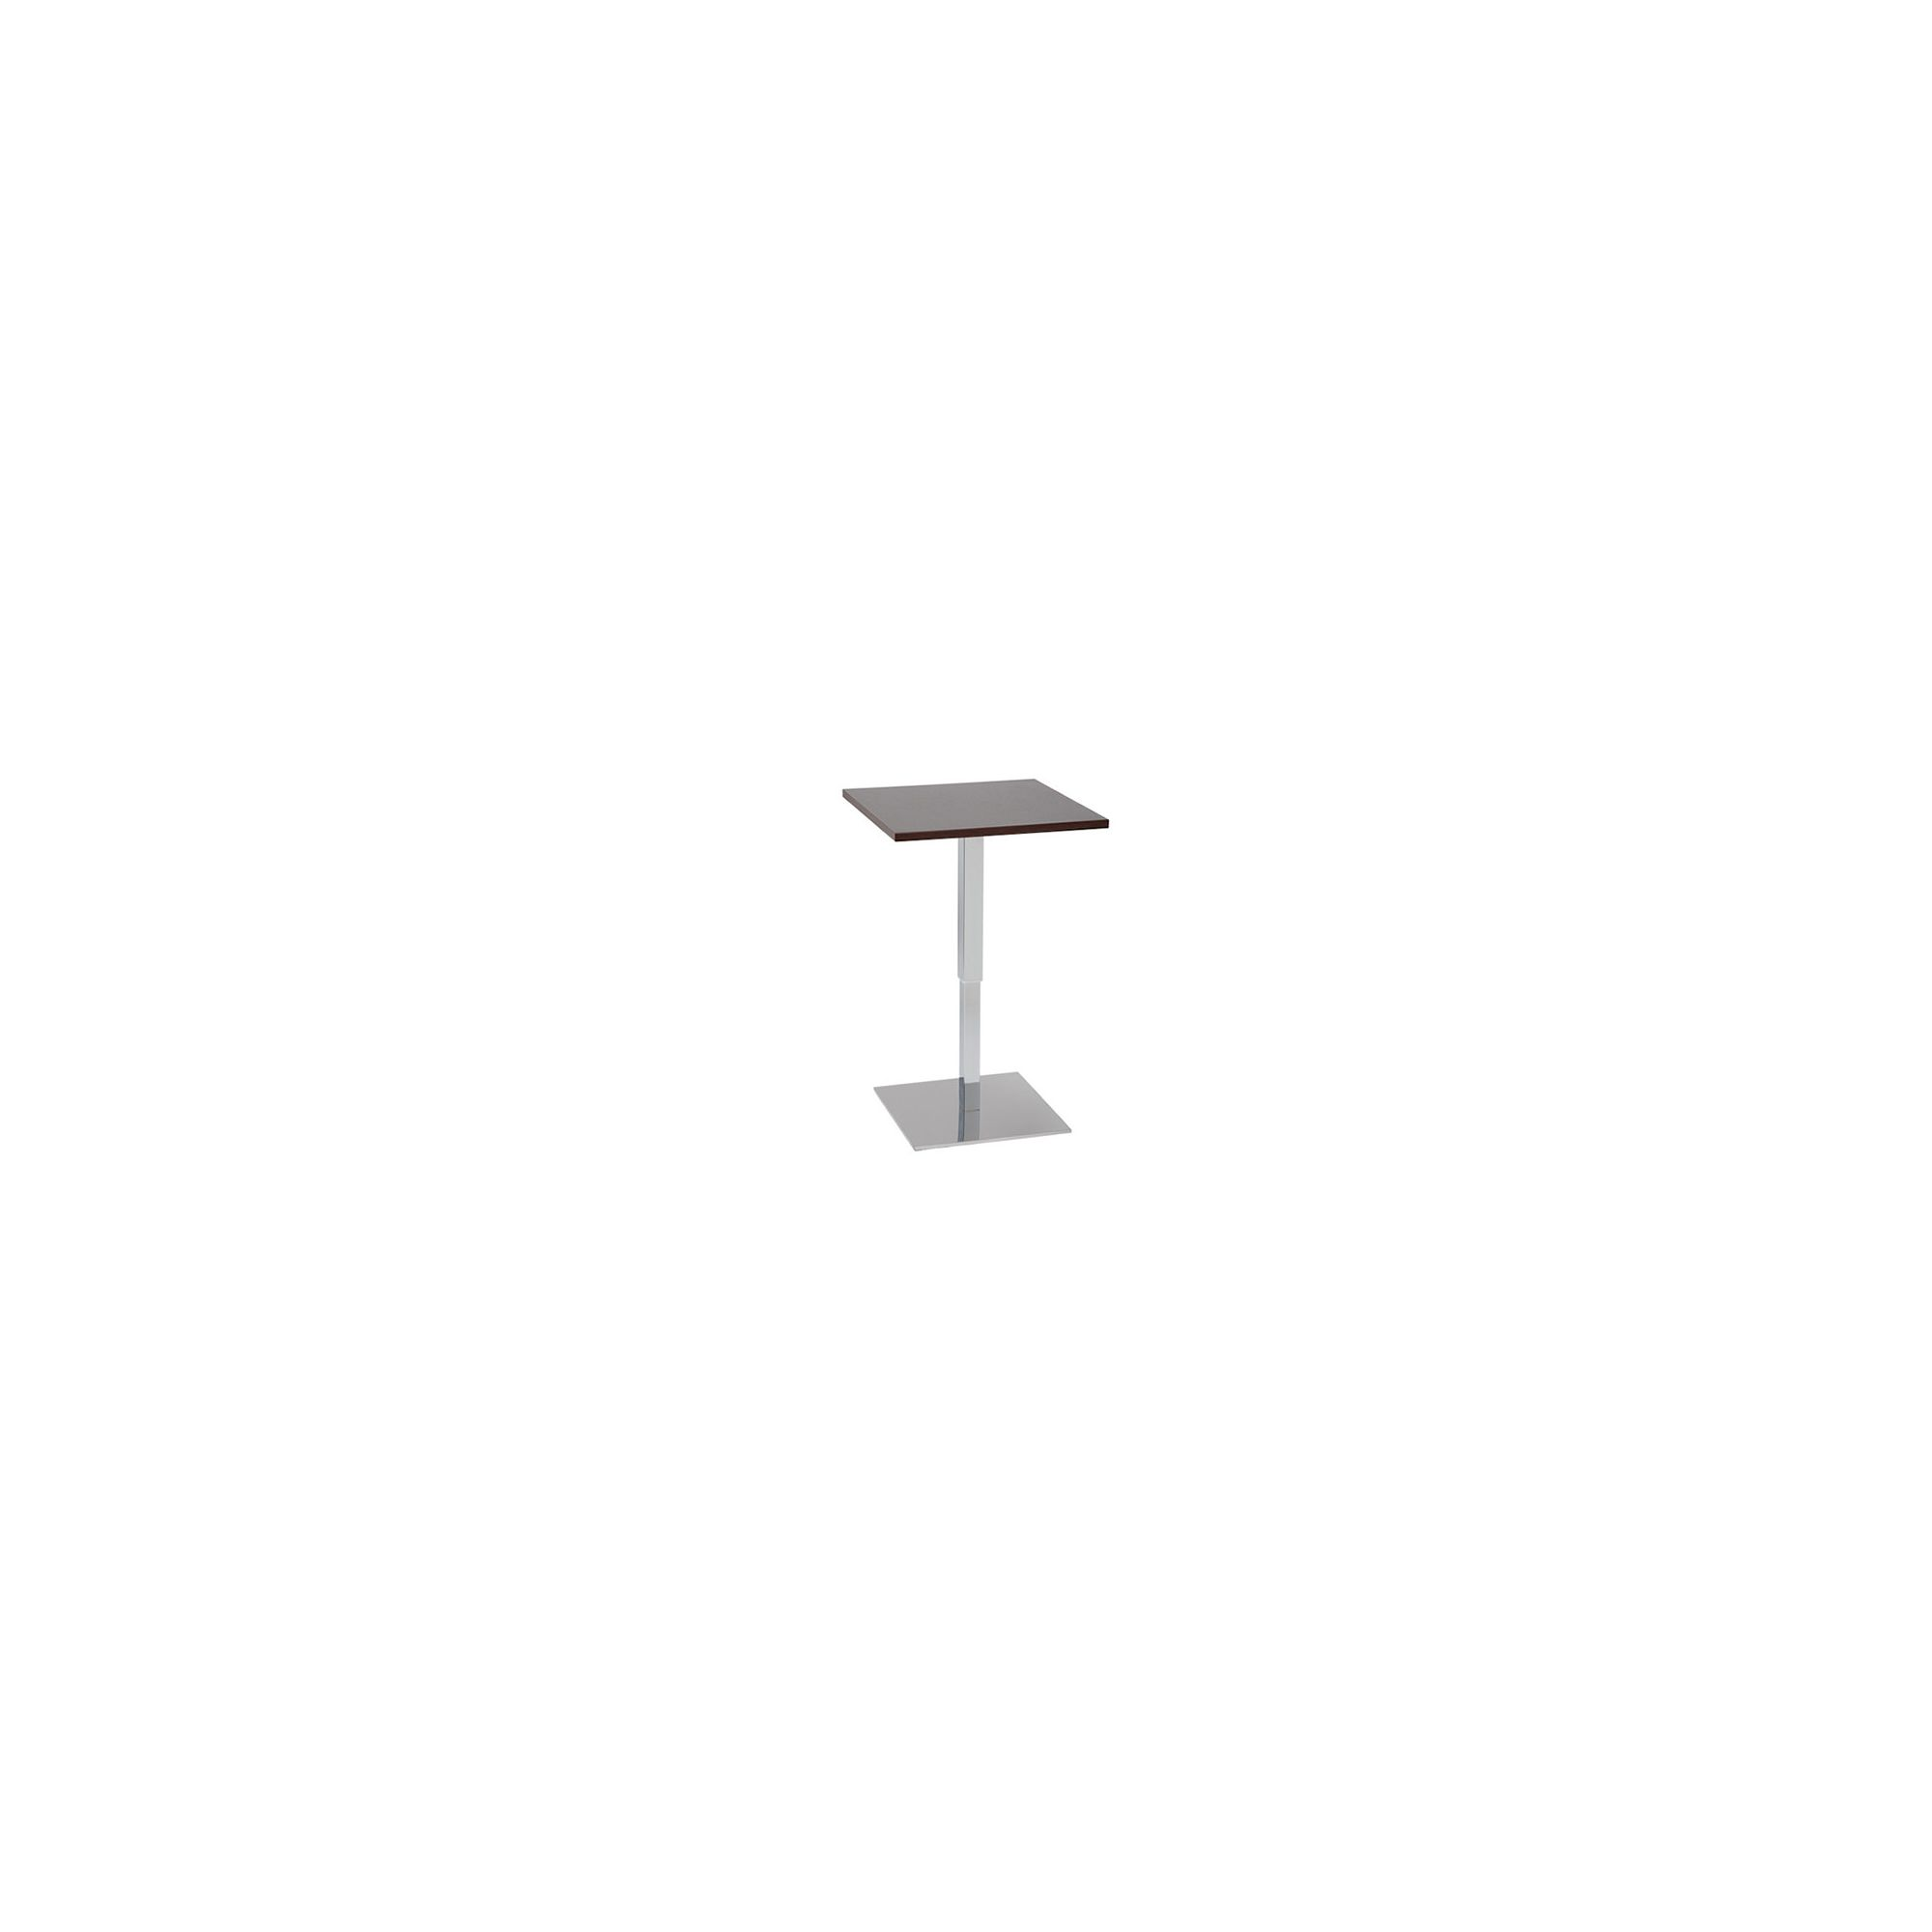 Pro Global Comfort Gas Lift Round Bar Table - Black at Tesco Direct